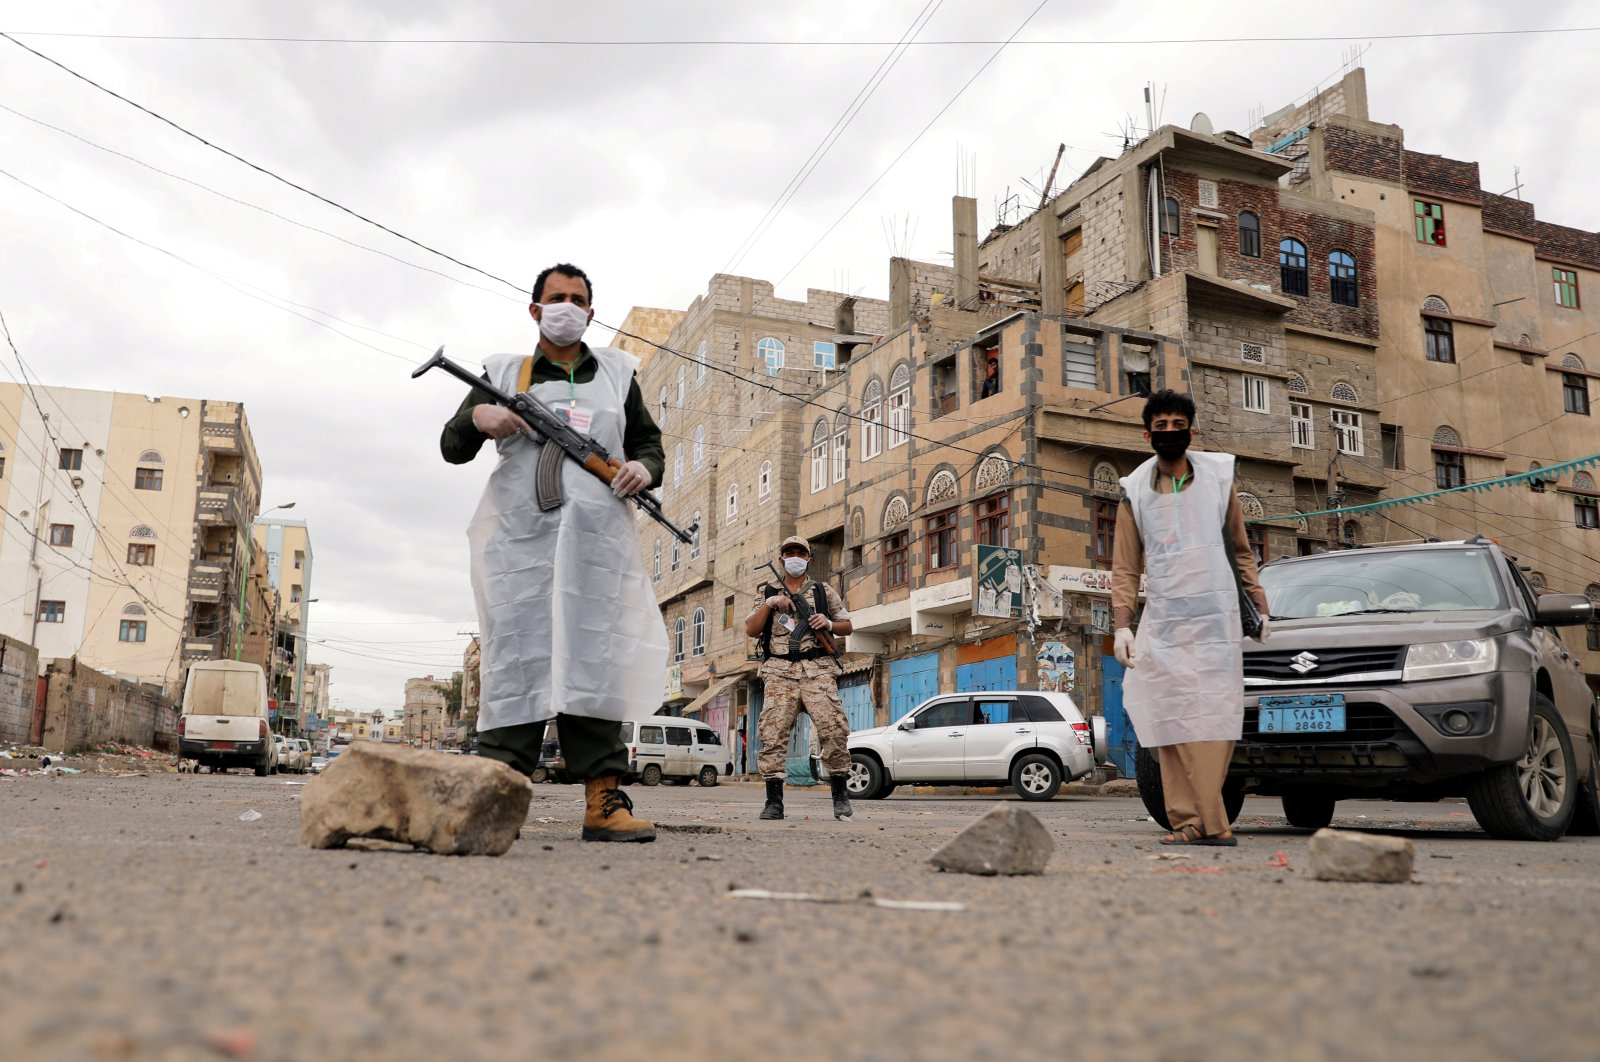 Security men wearing protective masks stand on a street during a 24-hour curfew amid concerns about the spread of the coronavirus, Sanaa, Yemen, May 6, 2020. (Reuters Photo)